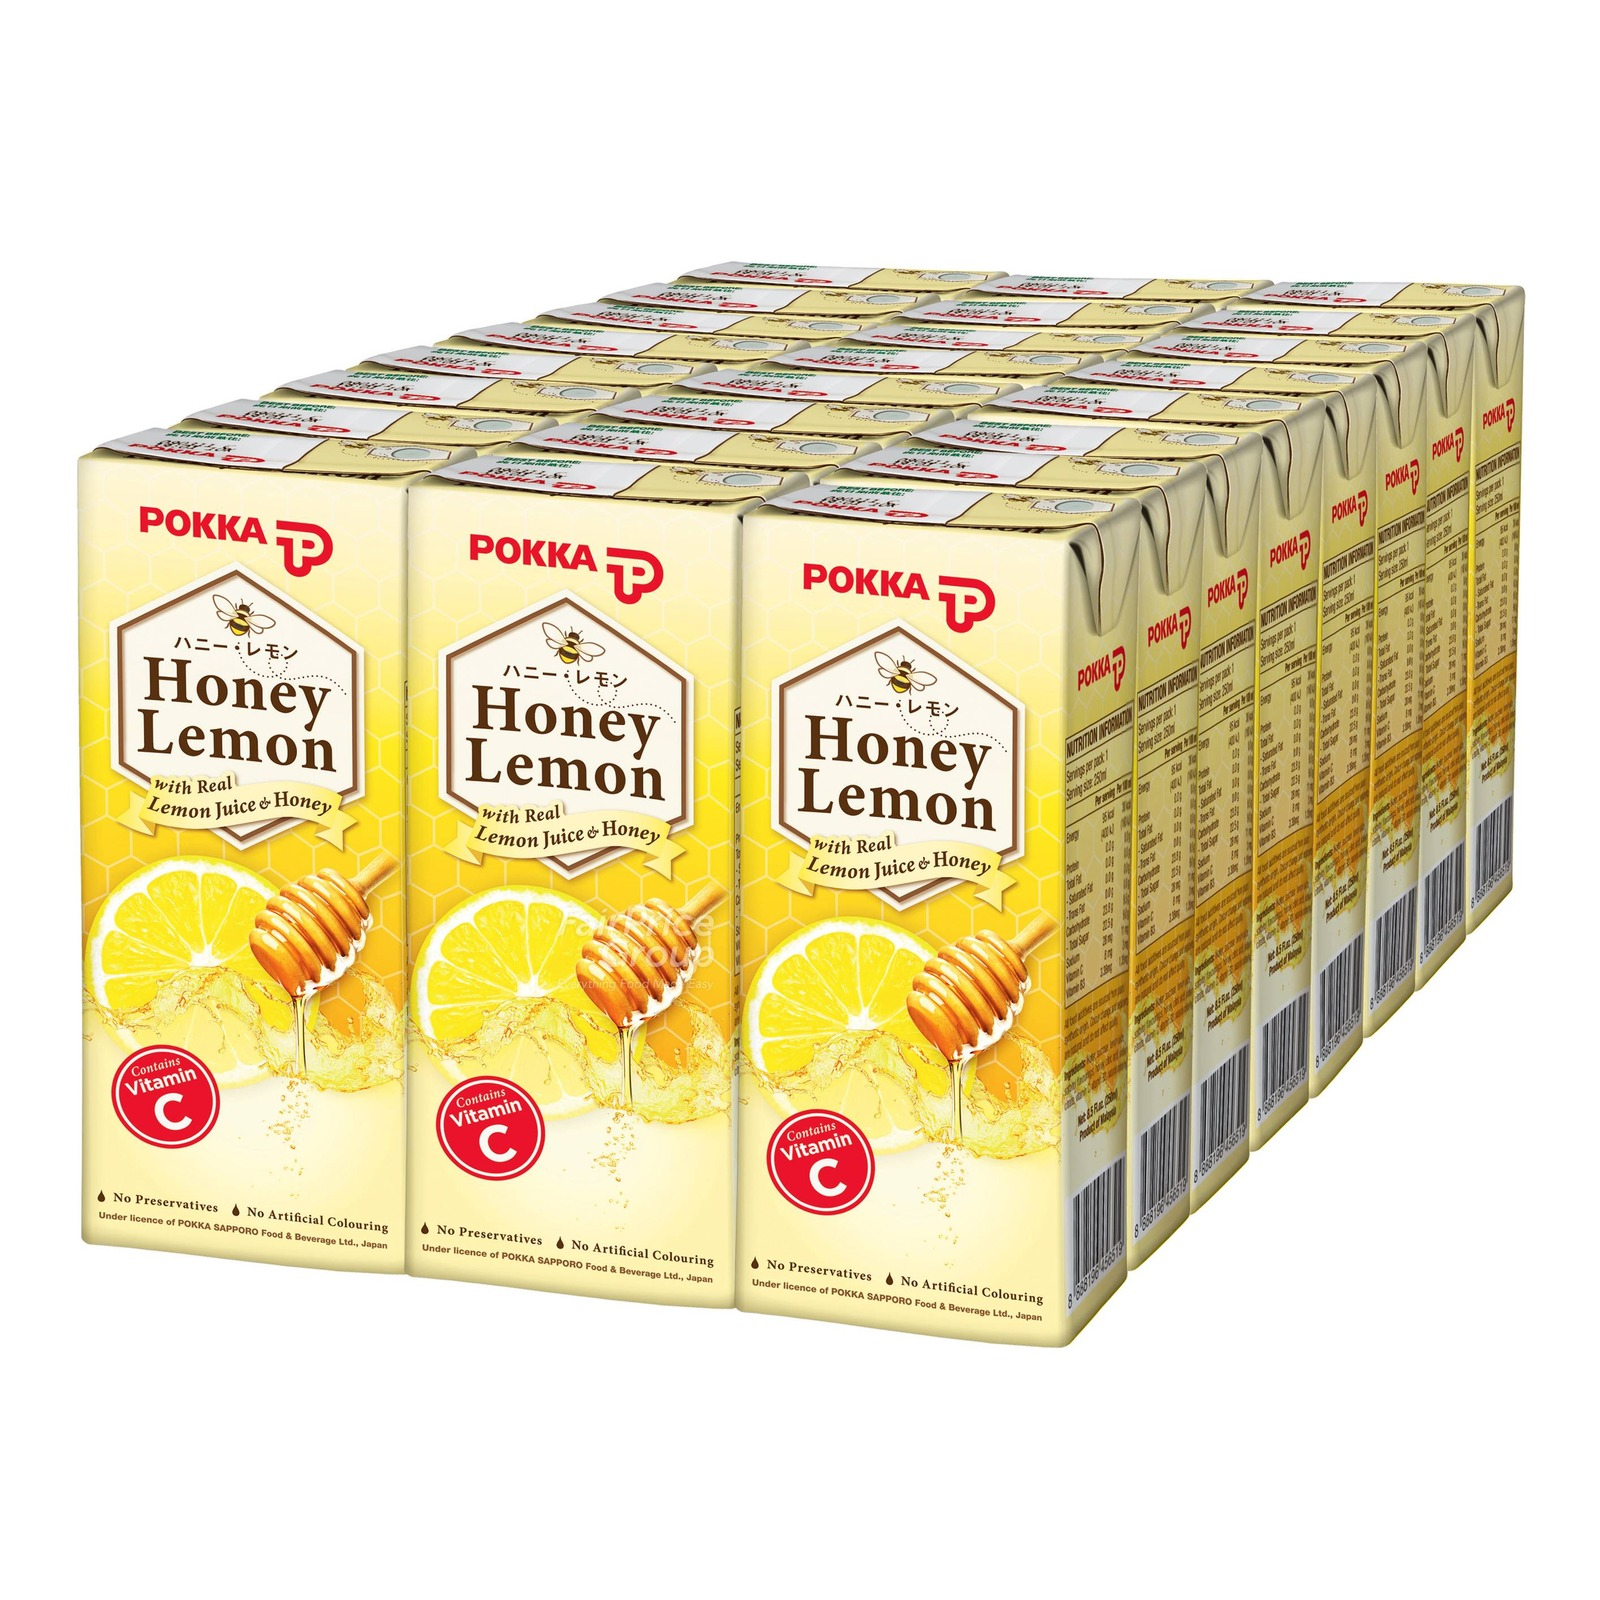 Pokka Packet Drink - Natsubee Honey Lemon